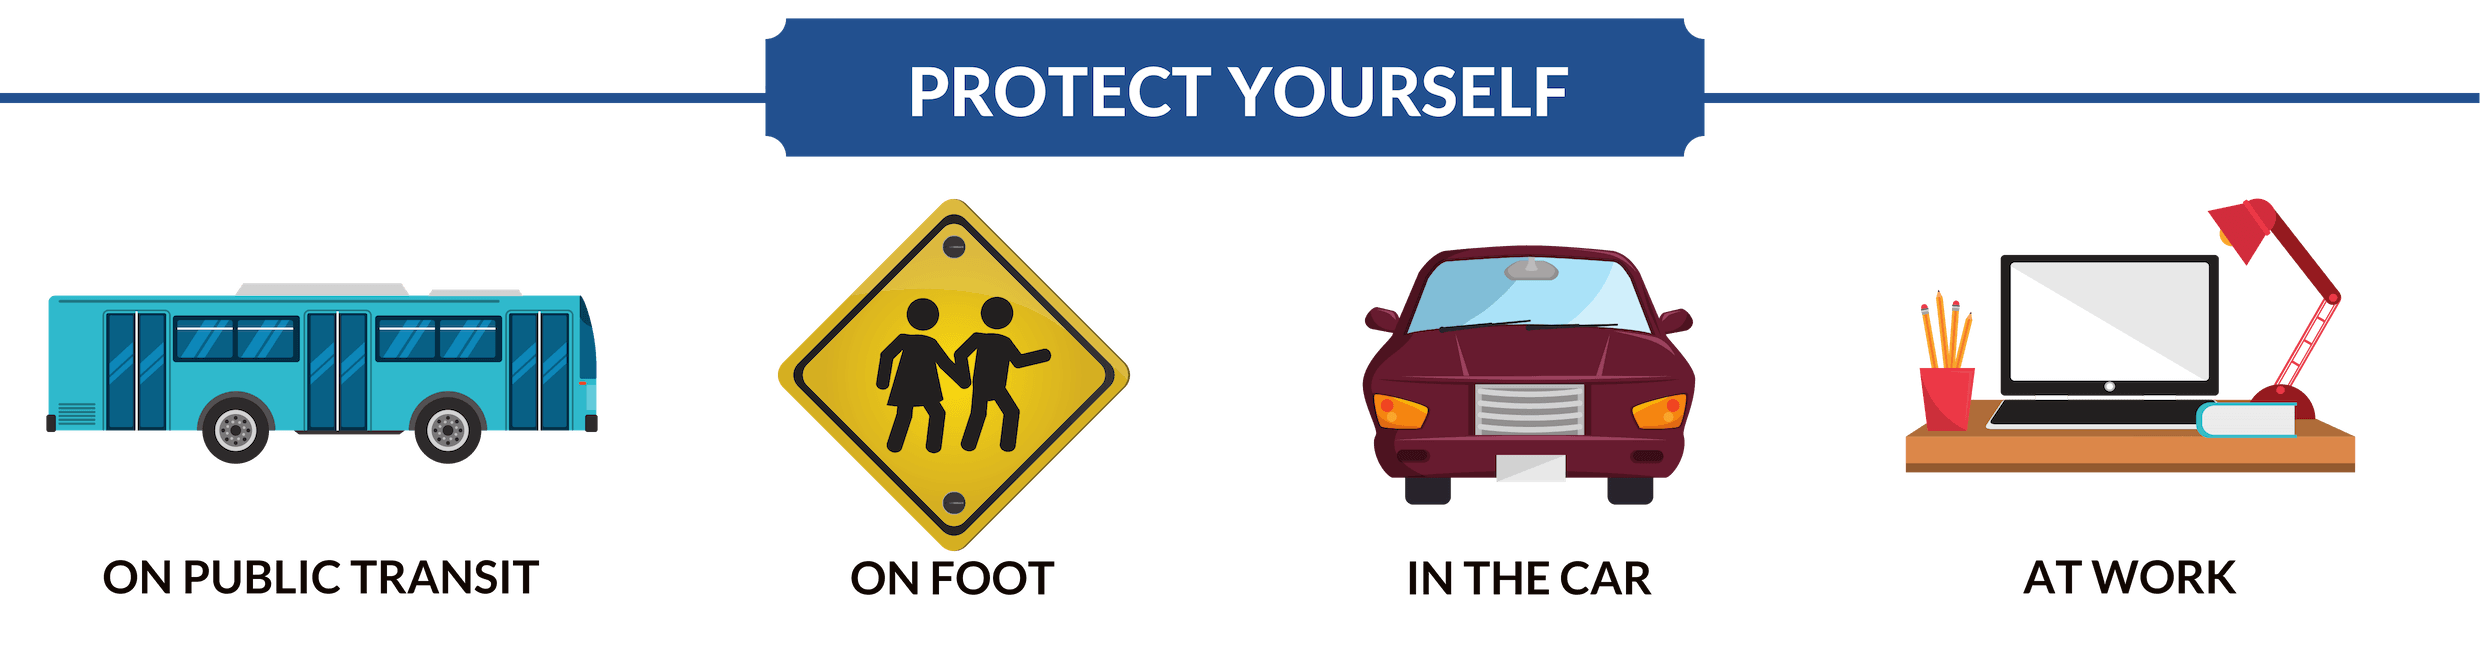 Banner for Tips on Protecting Yourself